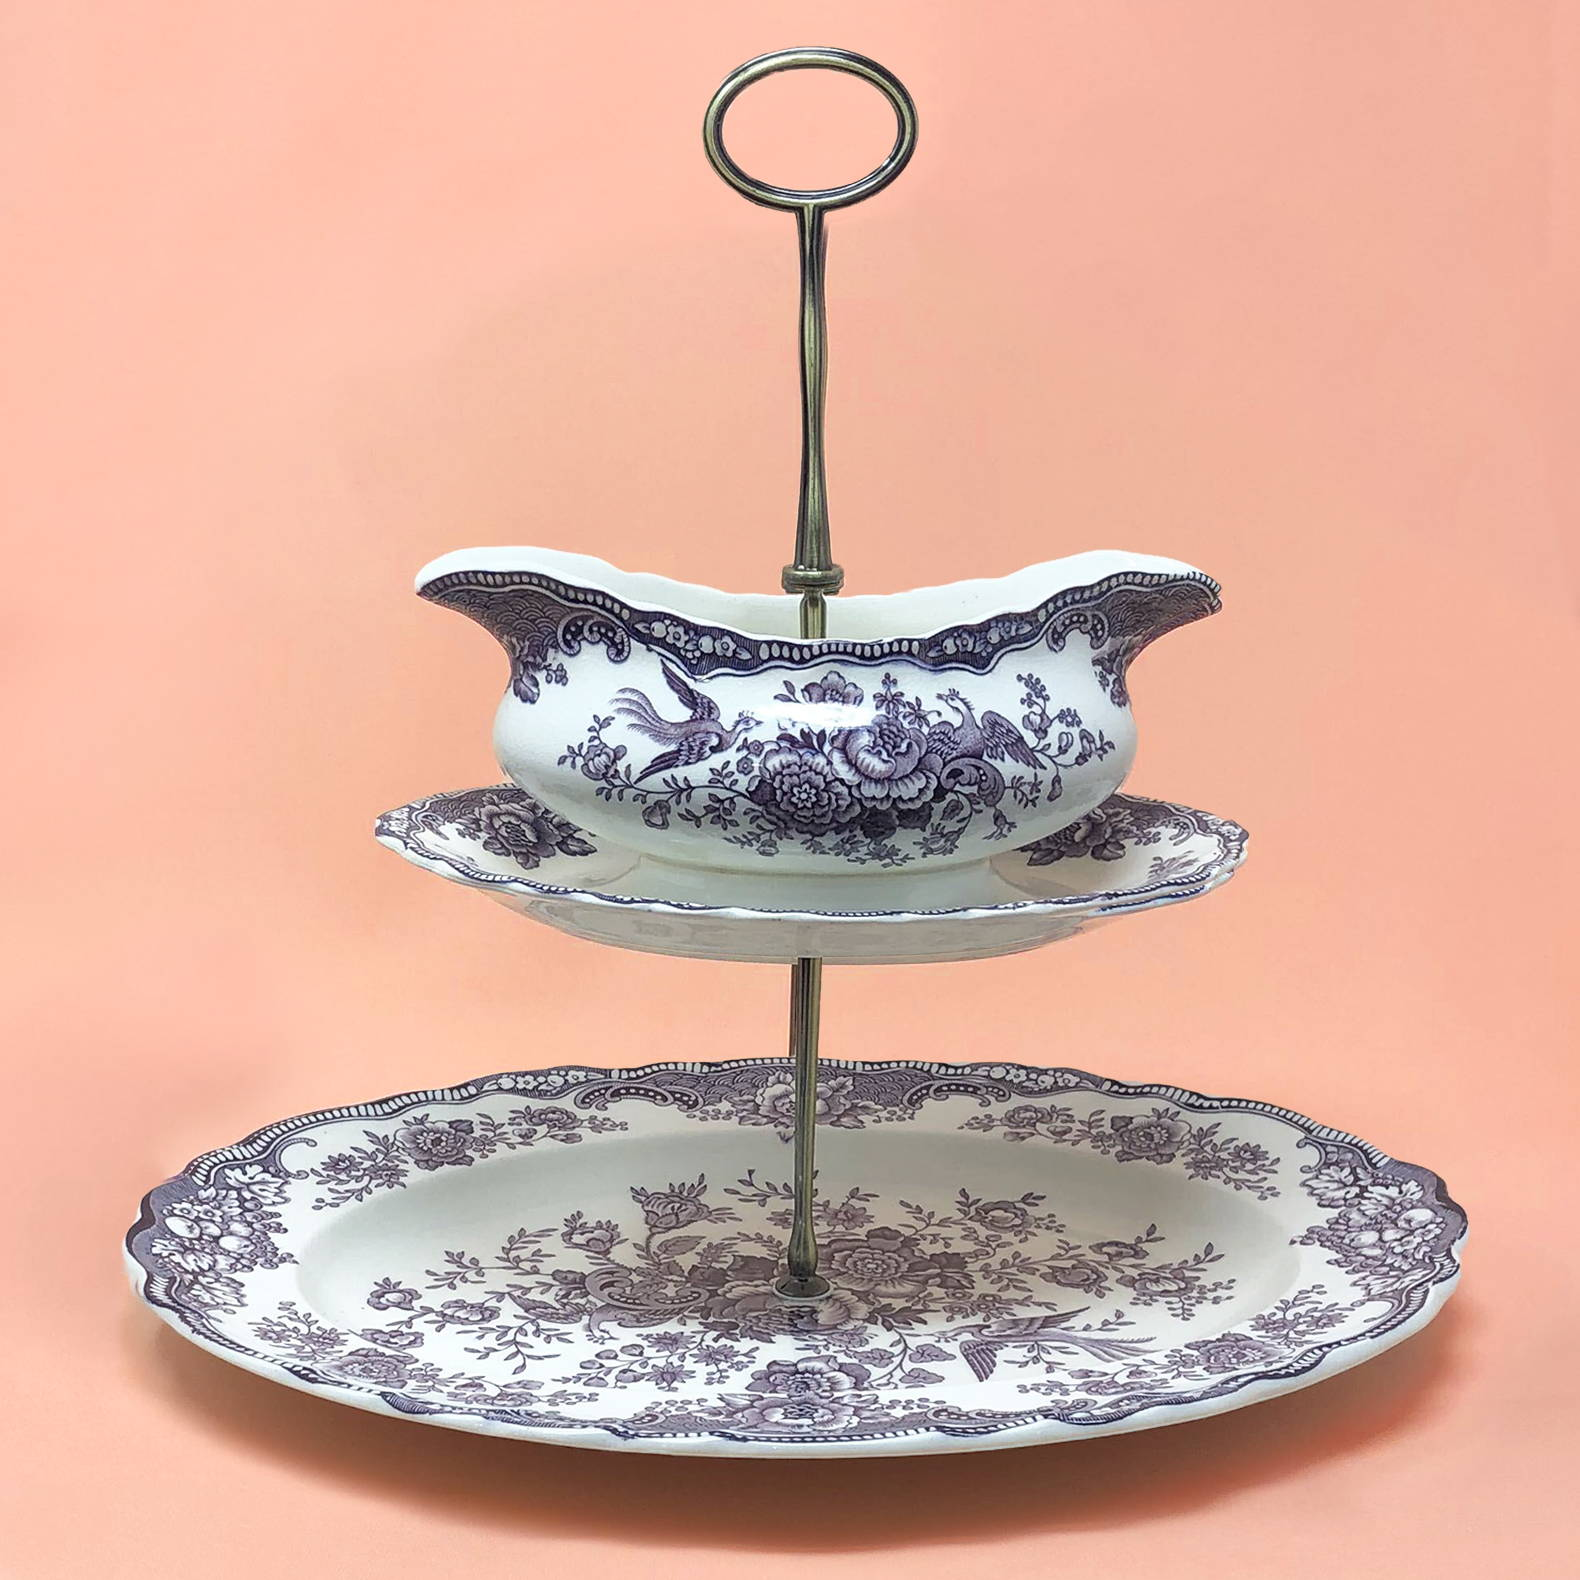 A 2-Tier vintage purple Crown Bristol stand with a gravy boat on top